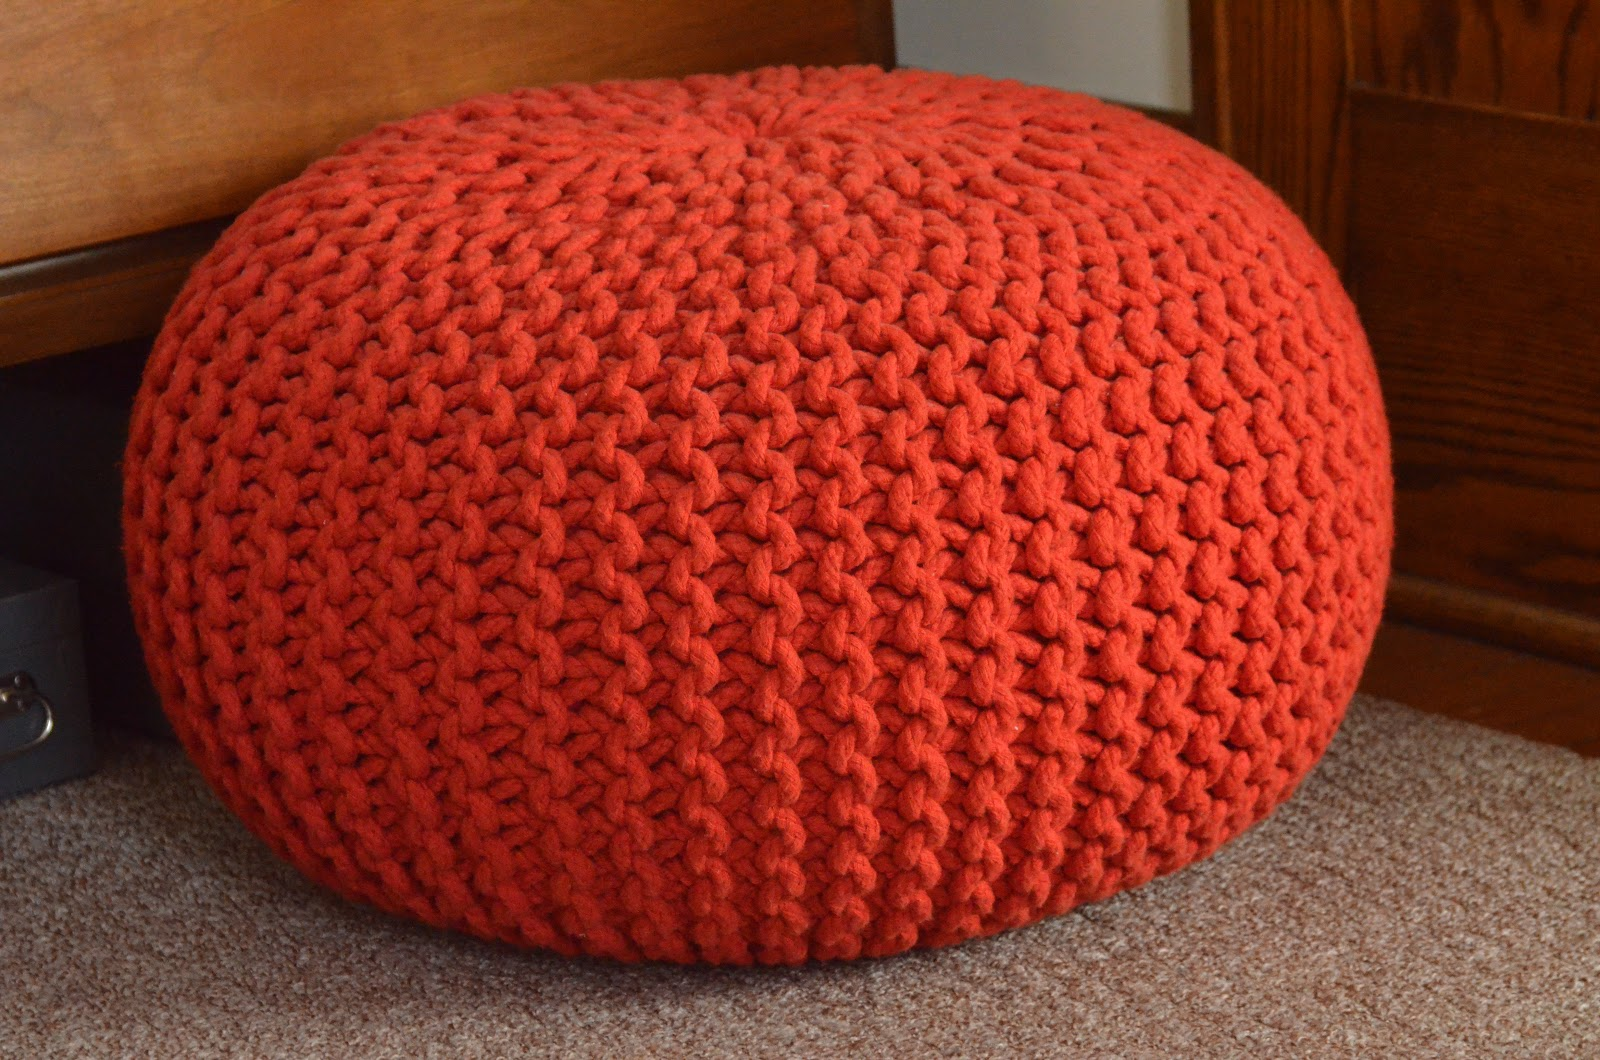 Orange knitted pouf